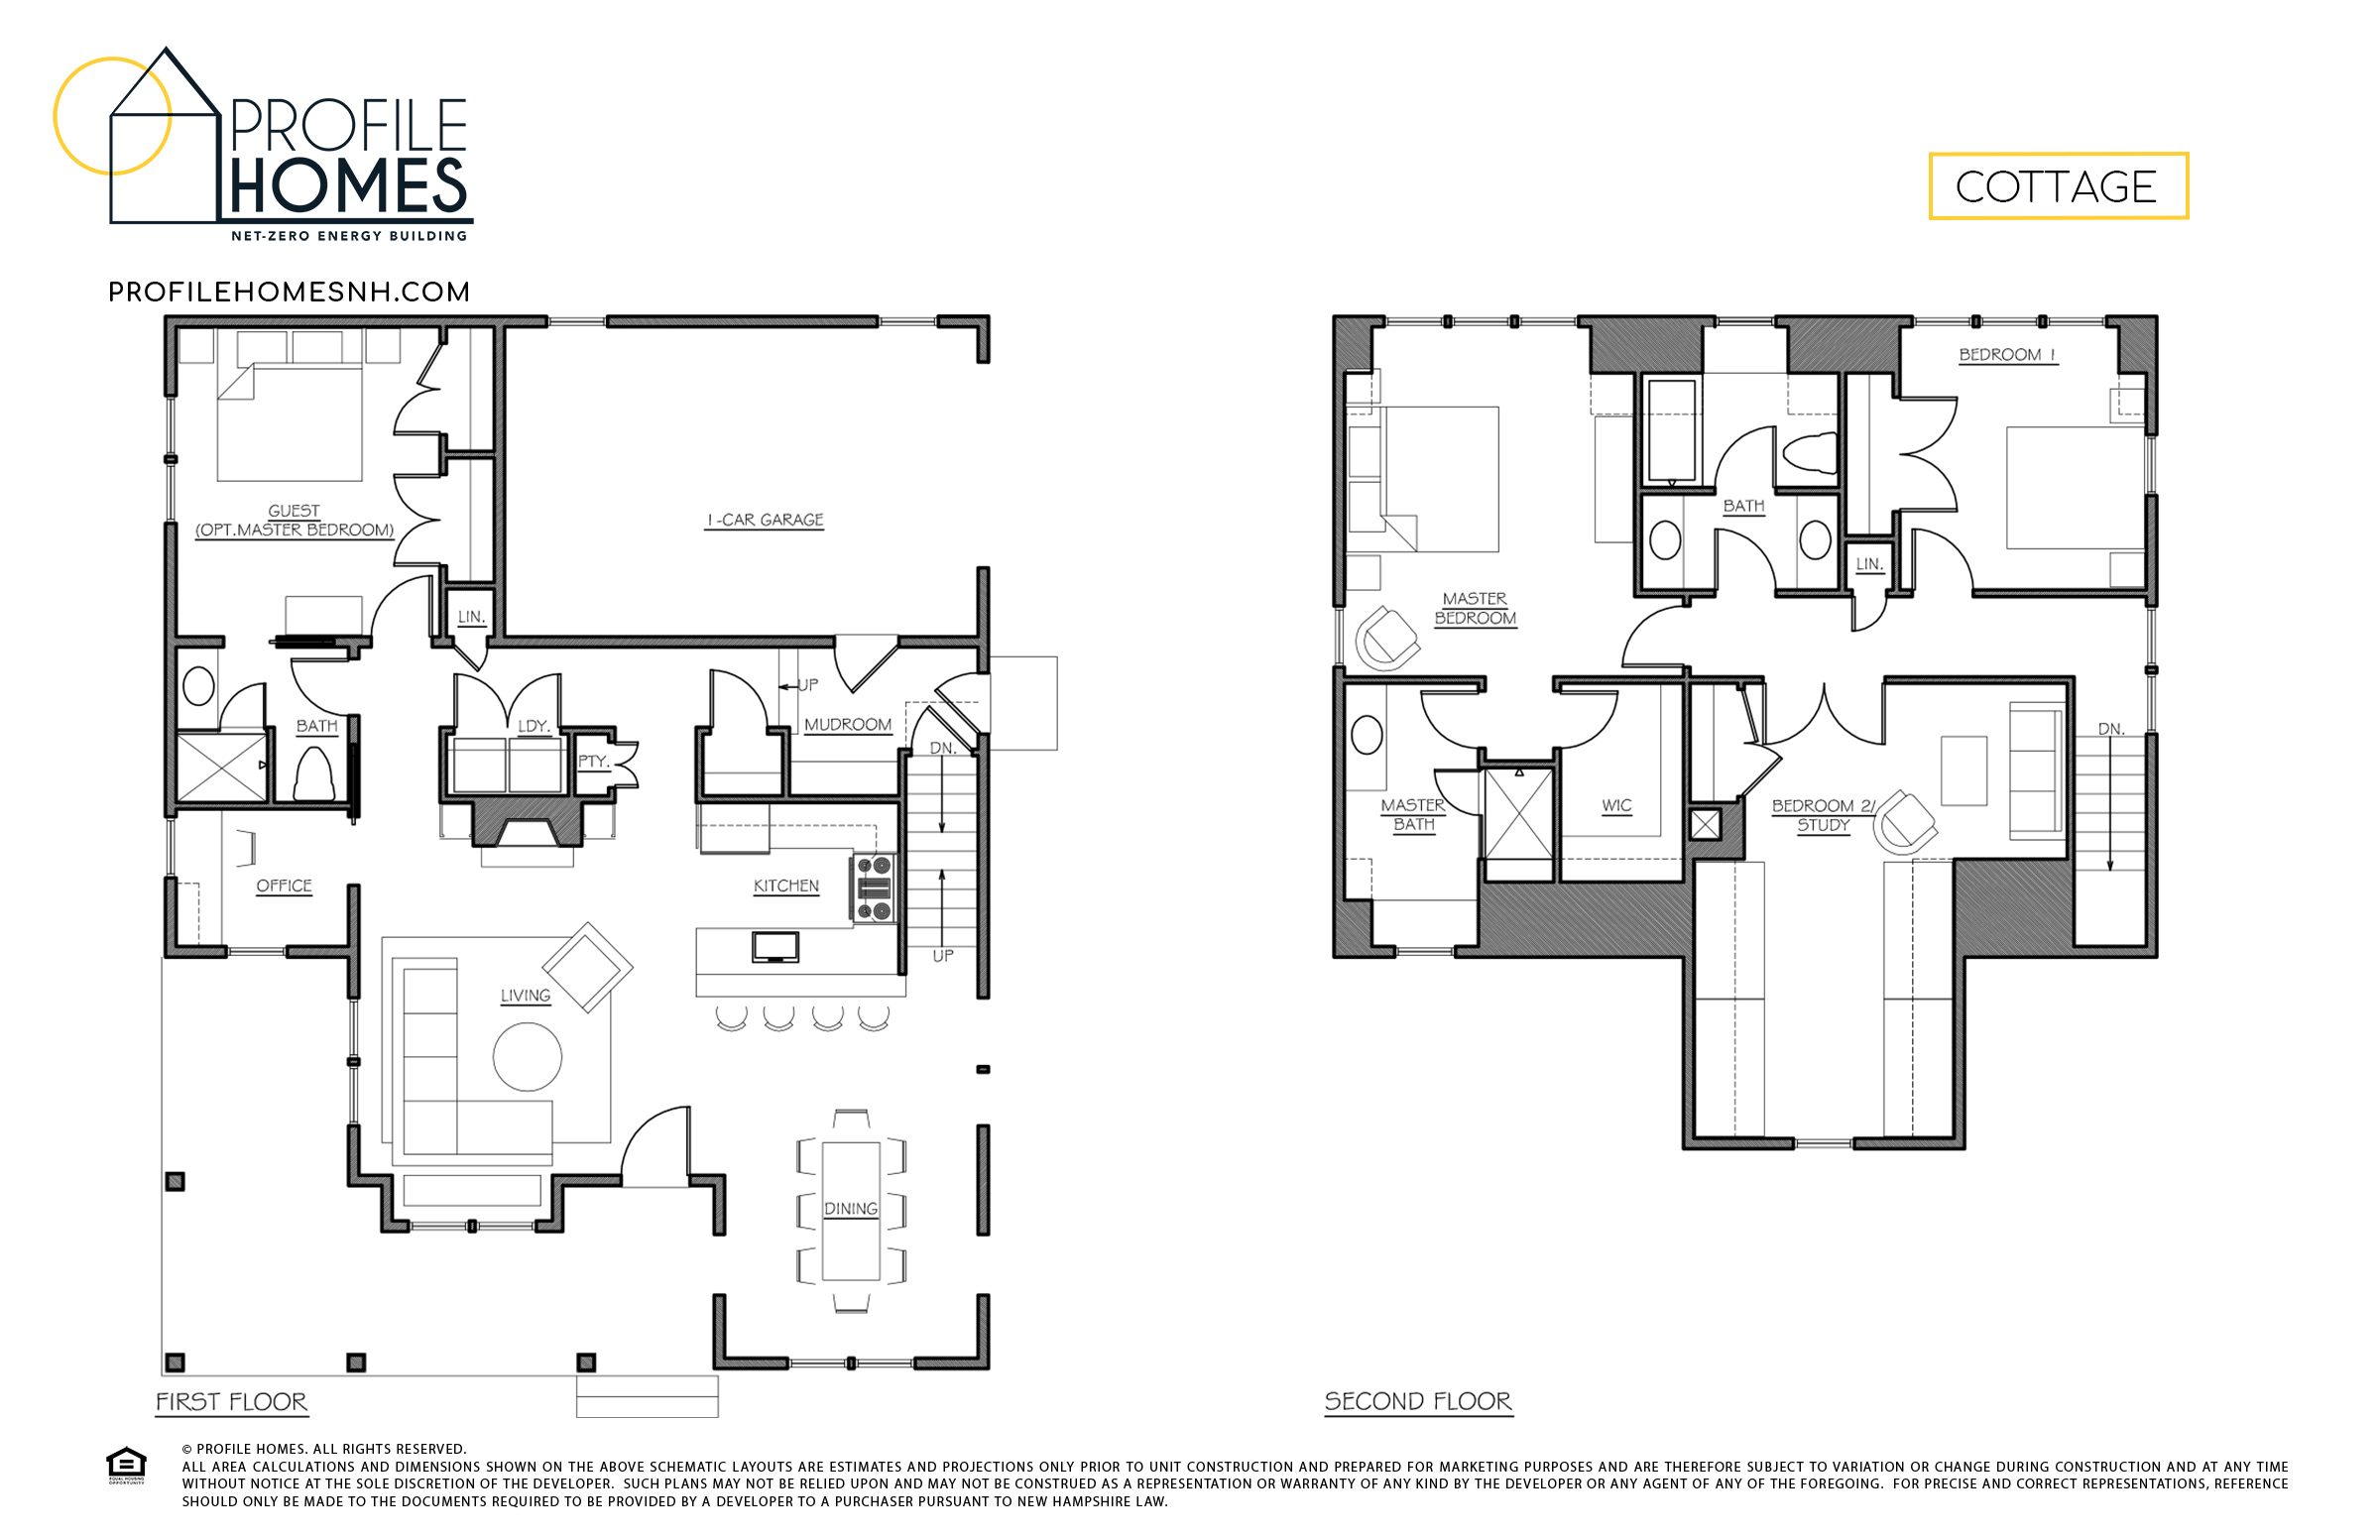 Profile Homes Floorplan Cottage © 2018 Profile Homes